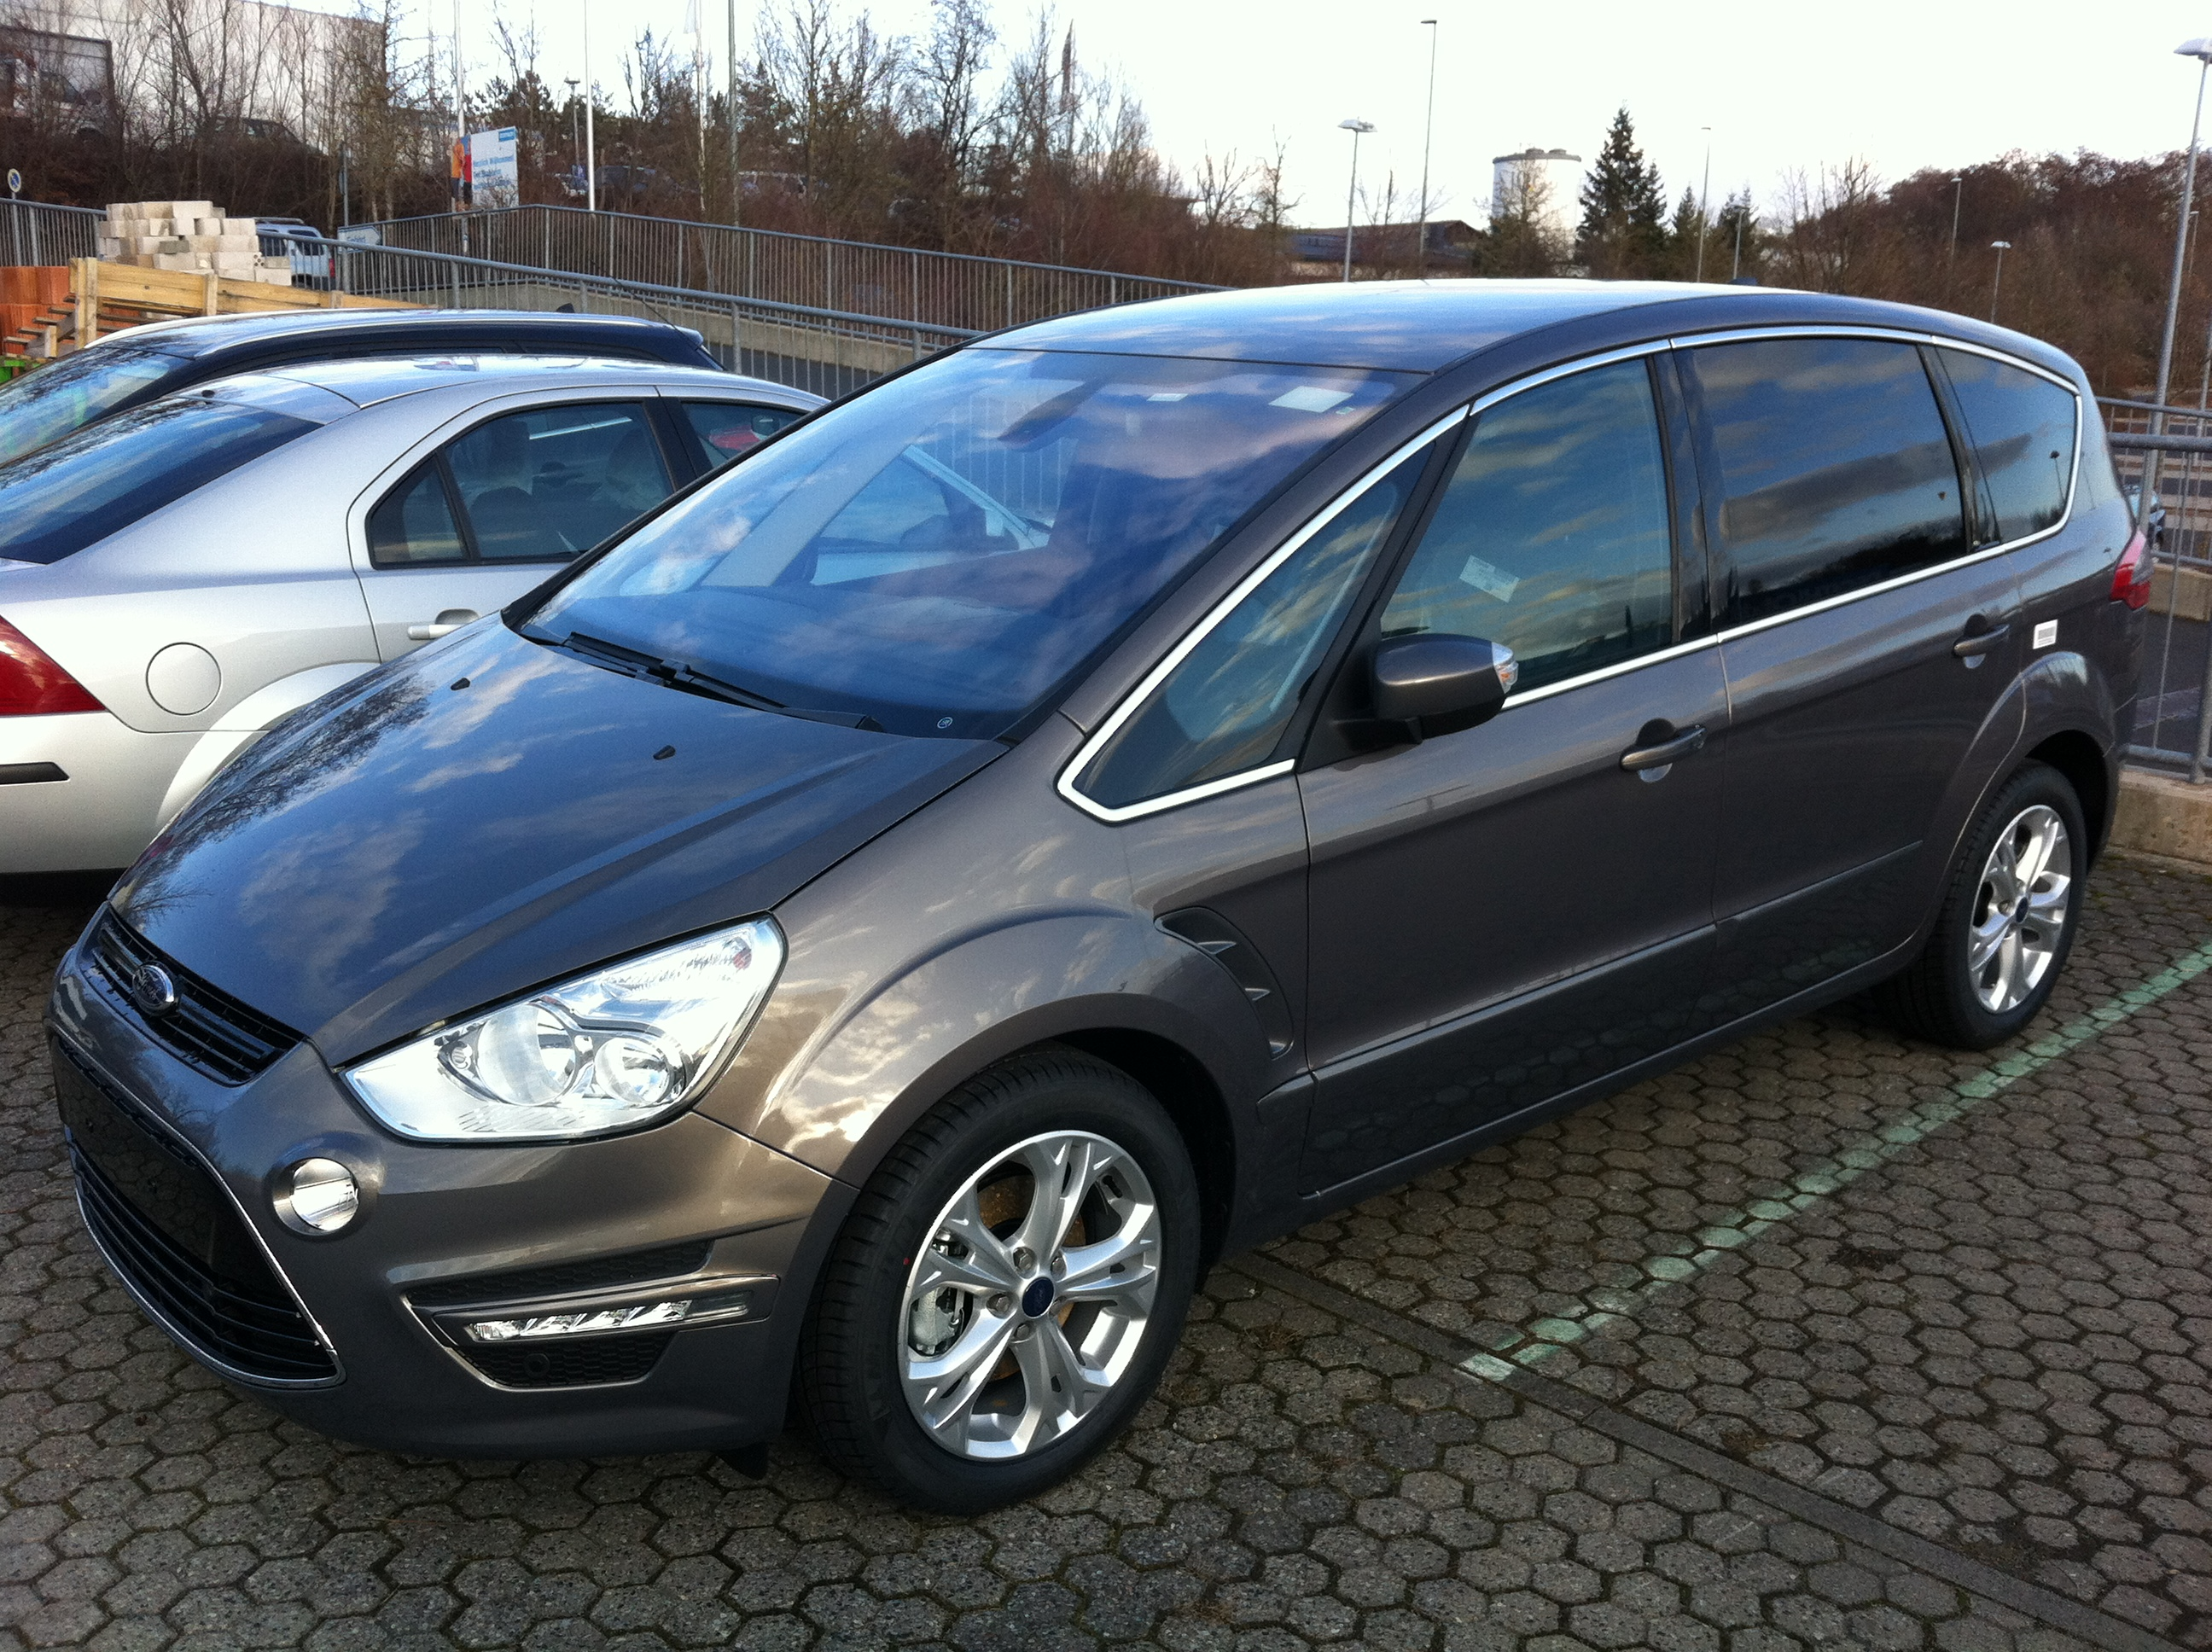 Ford S-Max 2.0 2012 photo - 12